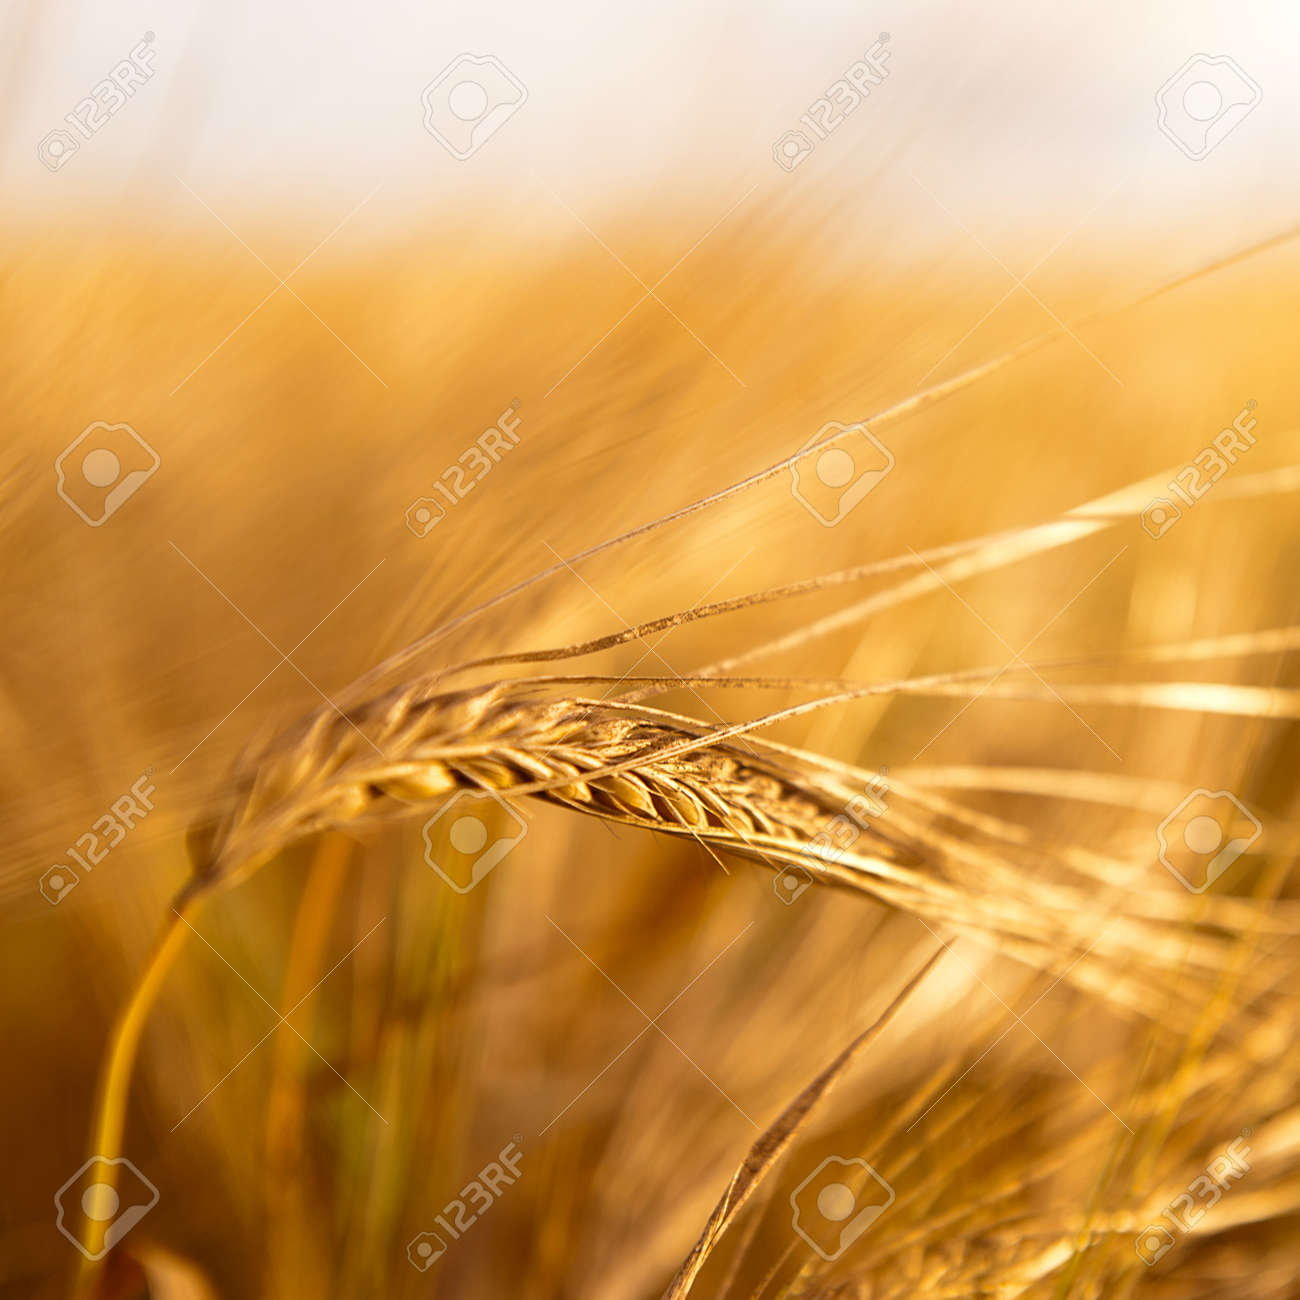 Closeup photo of a golden wheat in field under sunset rays Stock Photo - 12027194